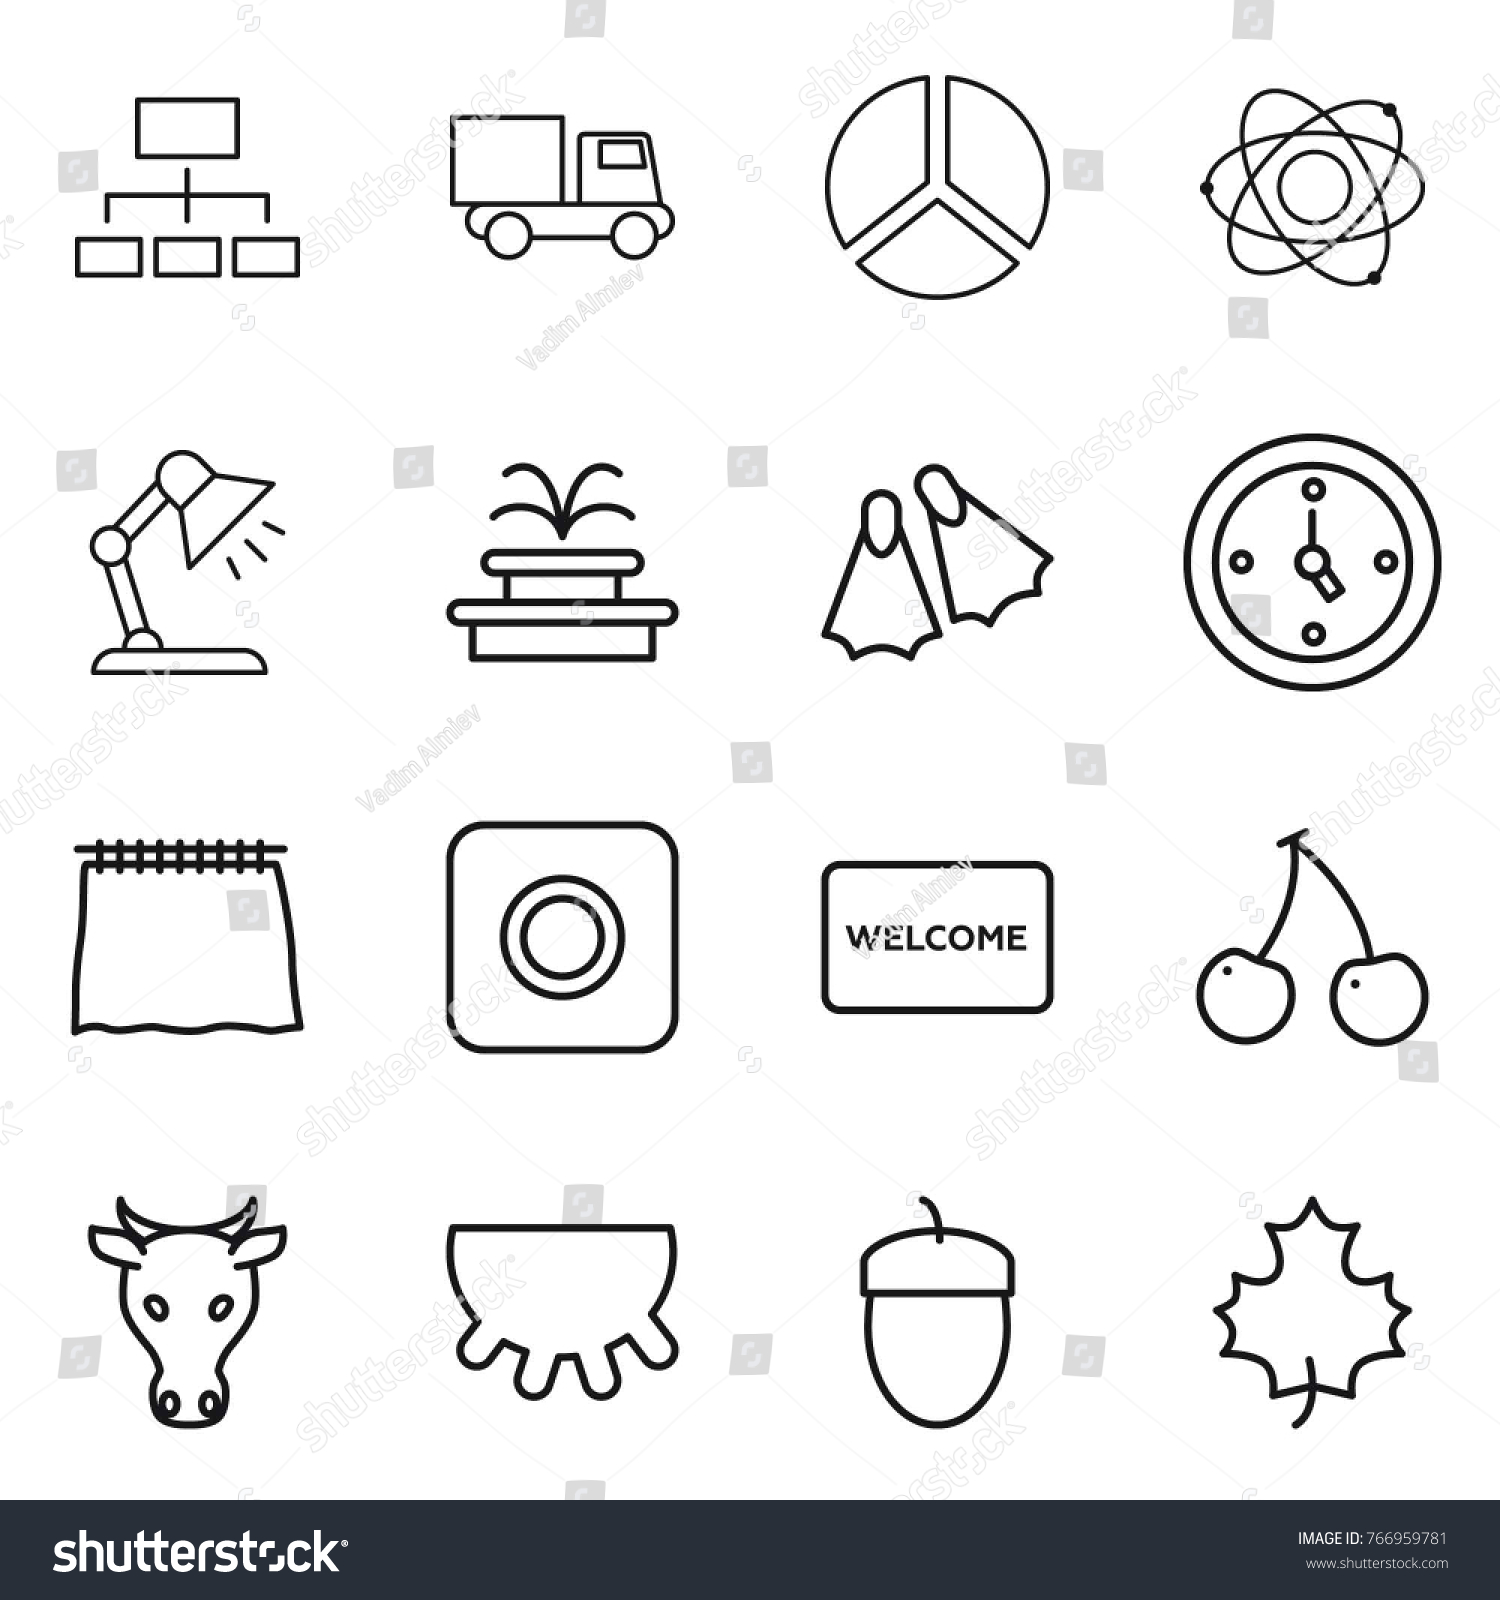 Thin line icon set hierarchy truck stock vector 766959781 shutterstock thin line icon set hierarchy truck diagram atom table lamp ccuart Choice Image